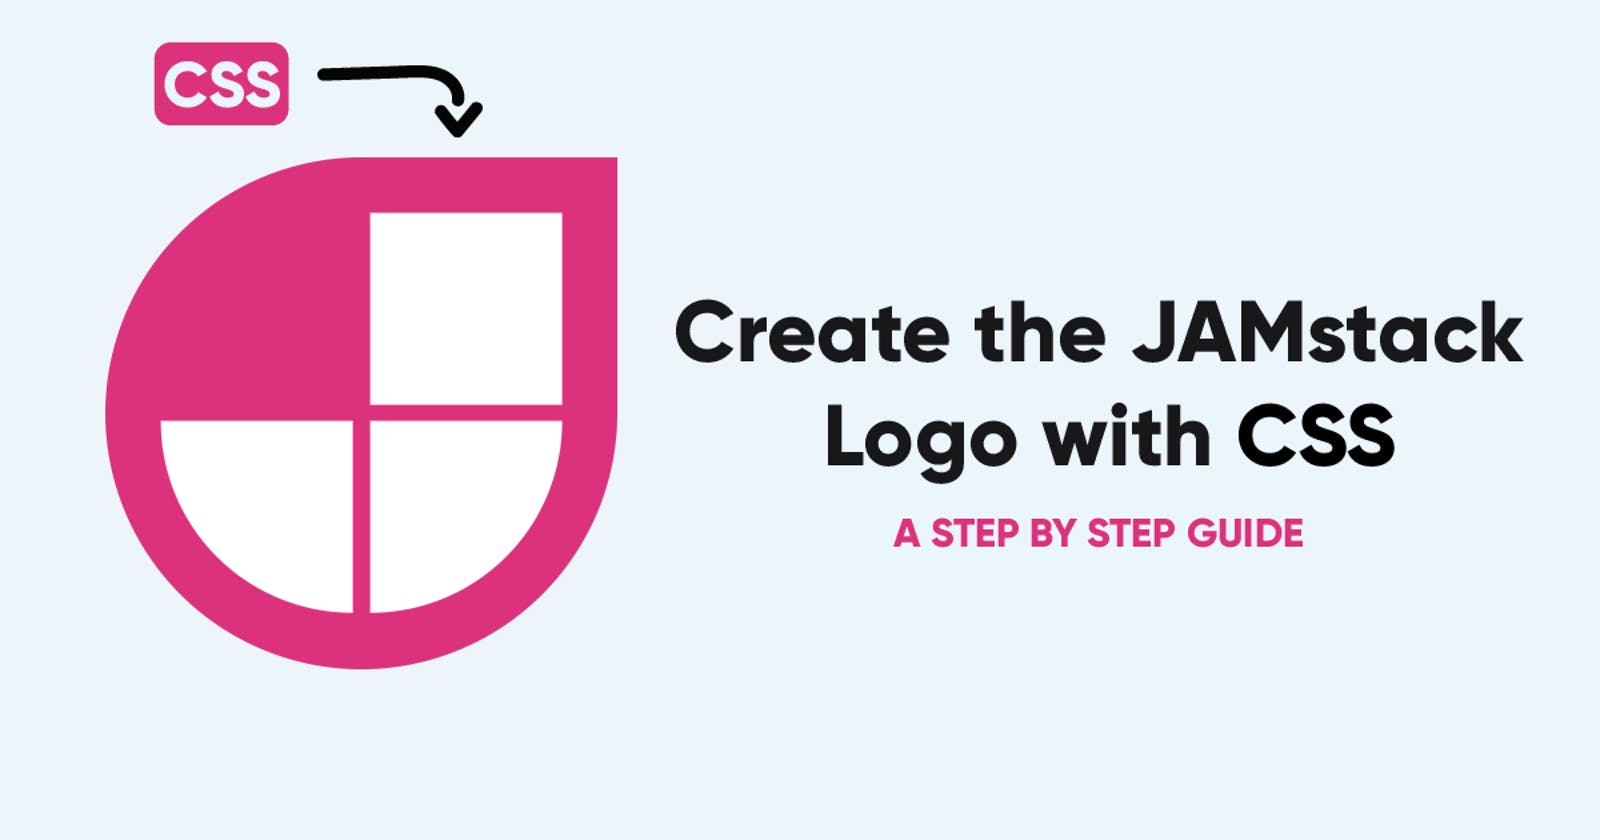 Creating the JAMstack Logo with CSS: A Step-By-Step Guide